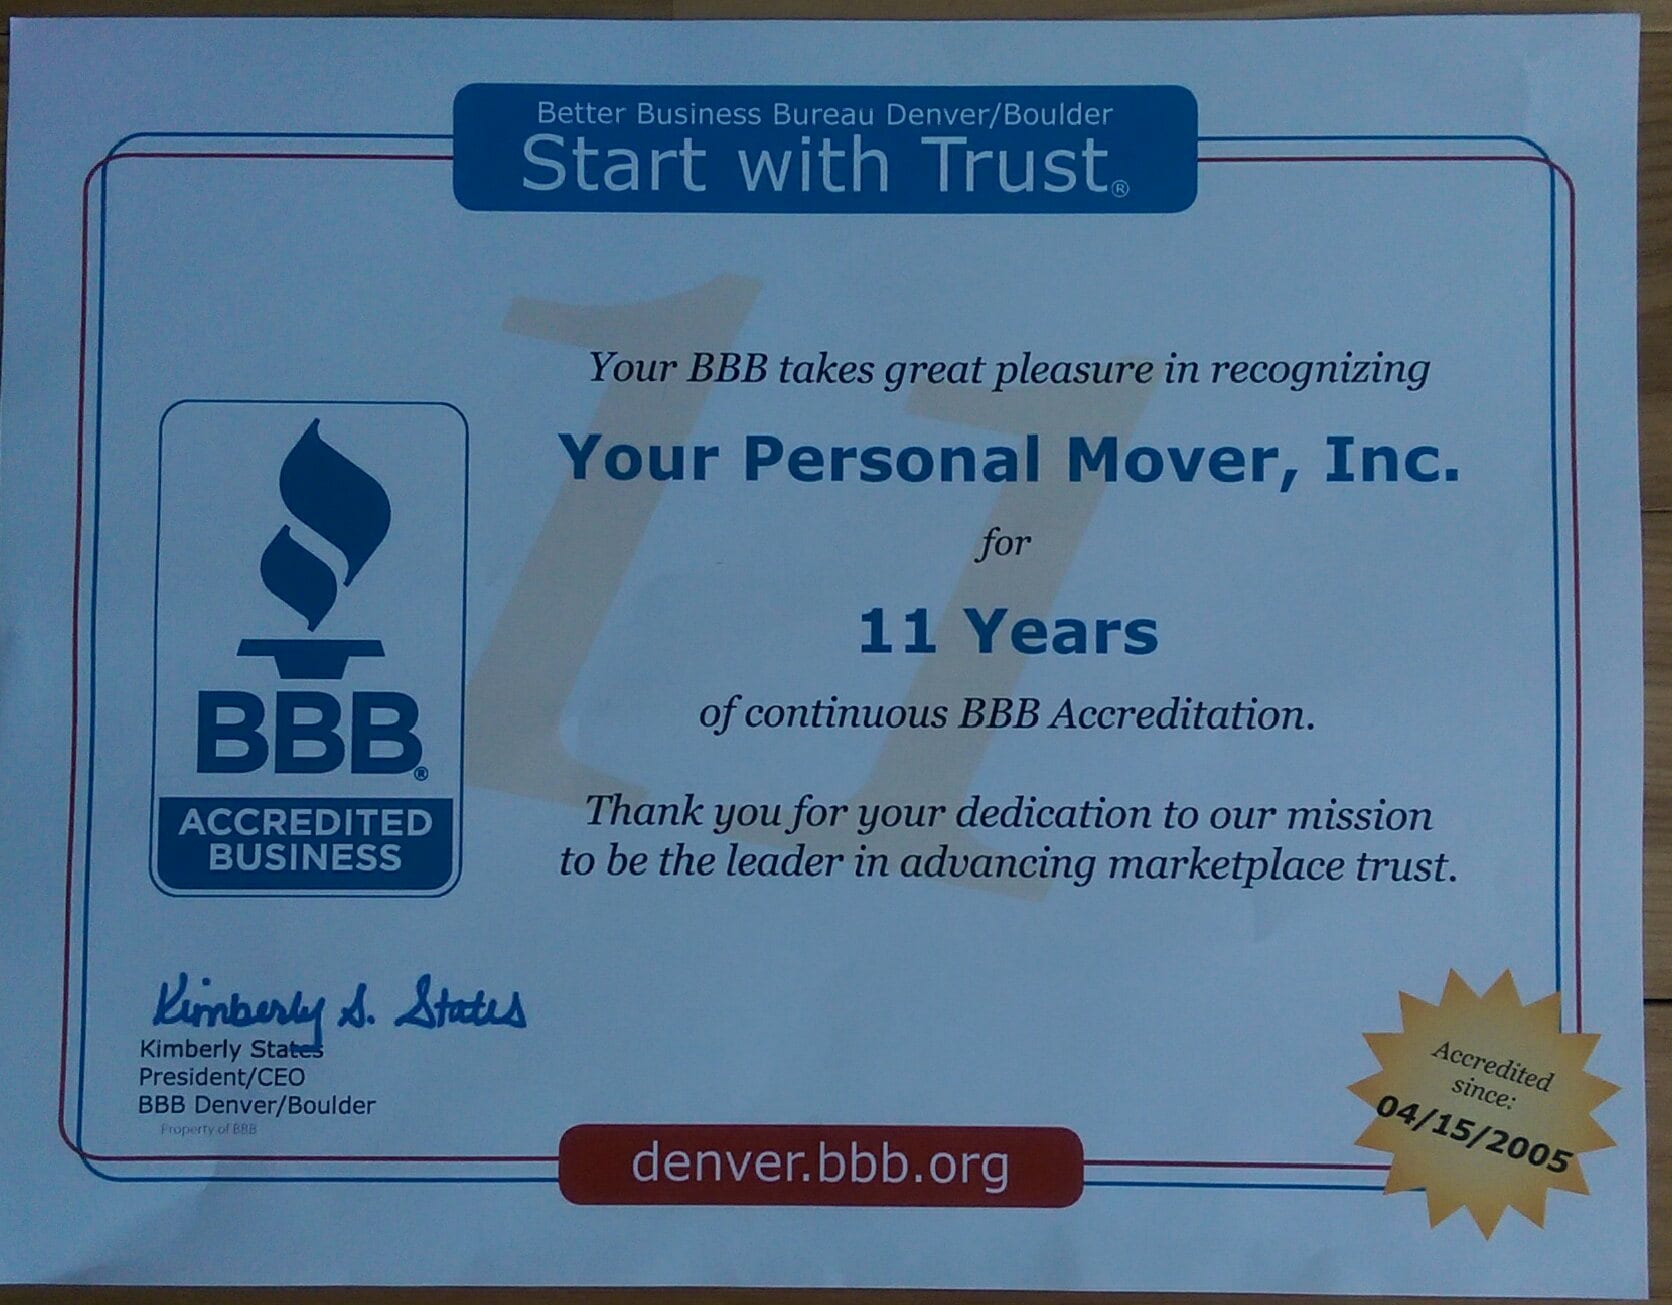 A+ BBB Rating for Your Personal Movers